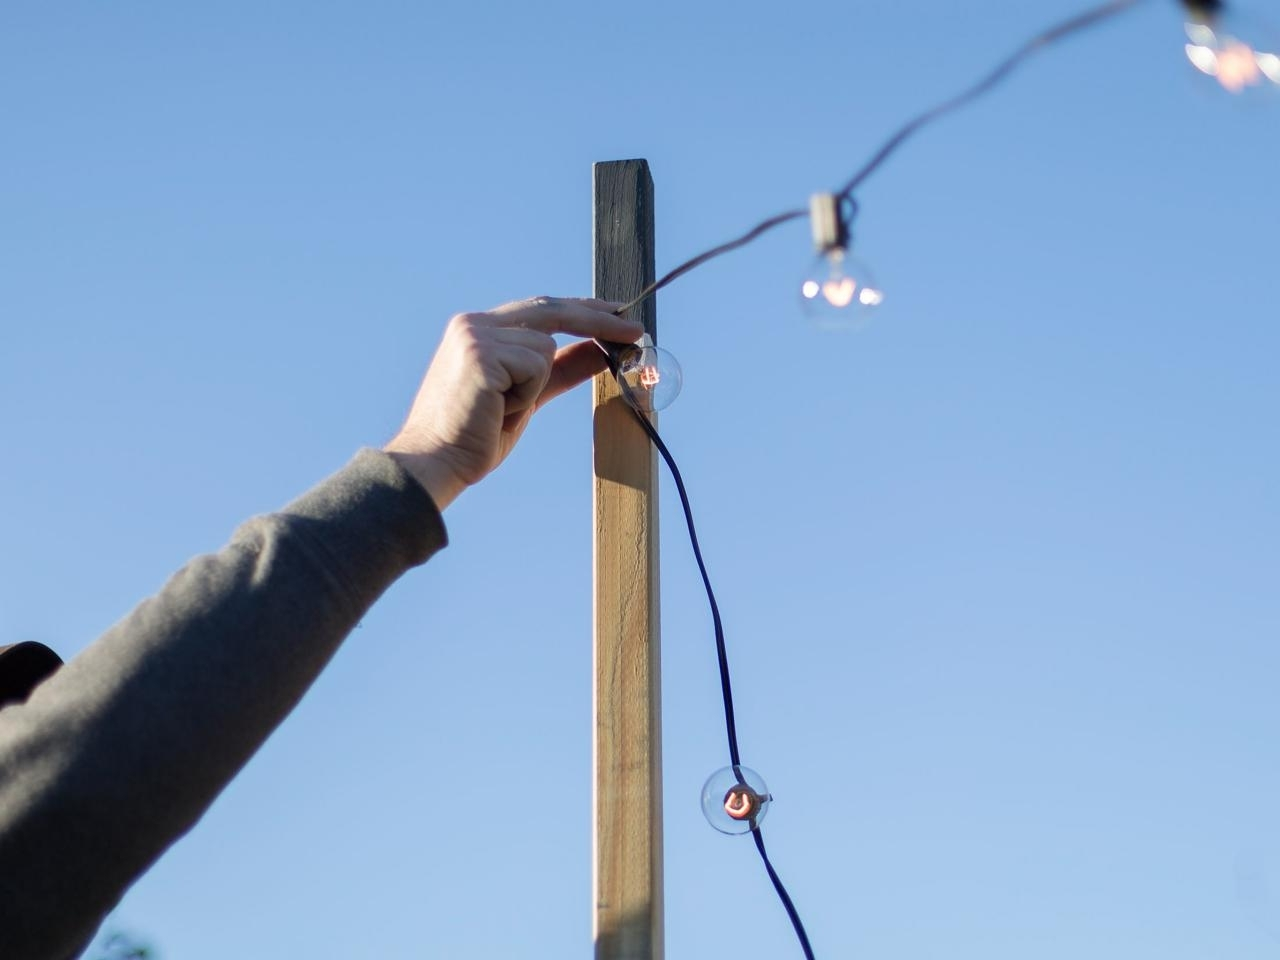 Hanging Outdoor Lights On Wire Within Fashionable How To Hang Outdoor String Lights From Diy Posts (View 20 of 20)